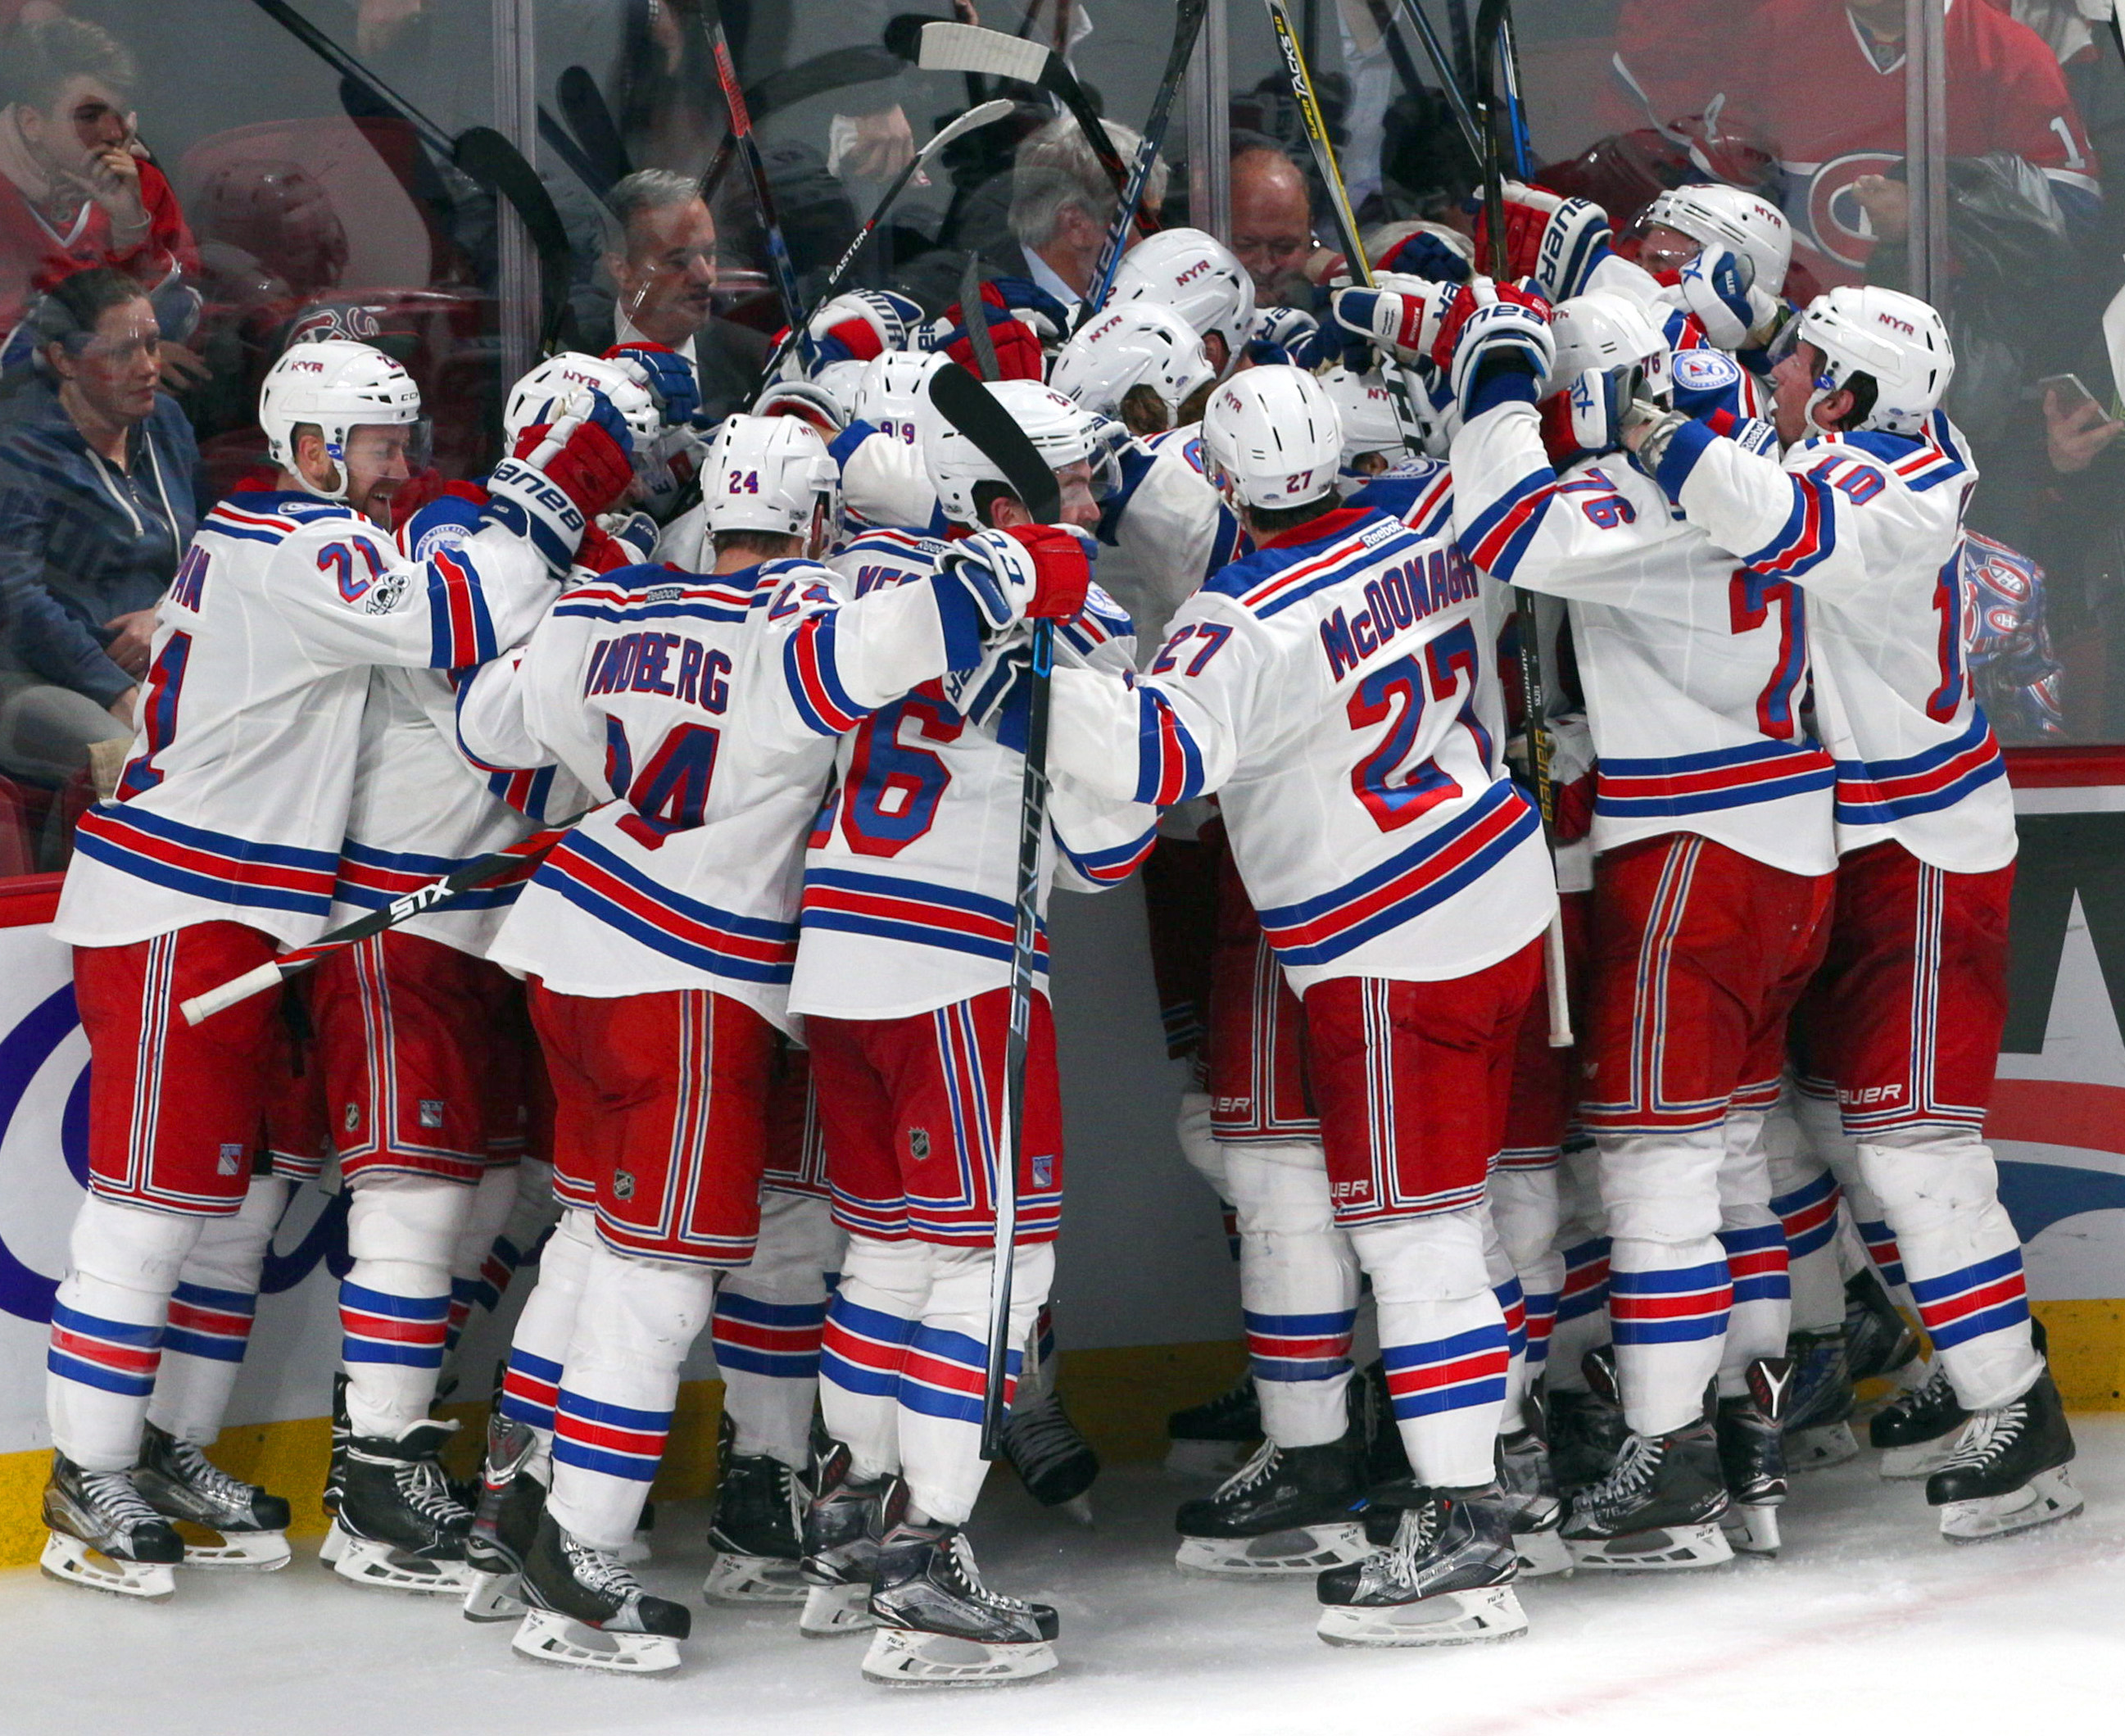 10022766-nhl-stanley-cup-playoffs-new-york-rangers-at-montreal-canadiens